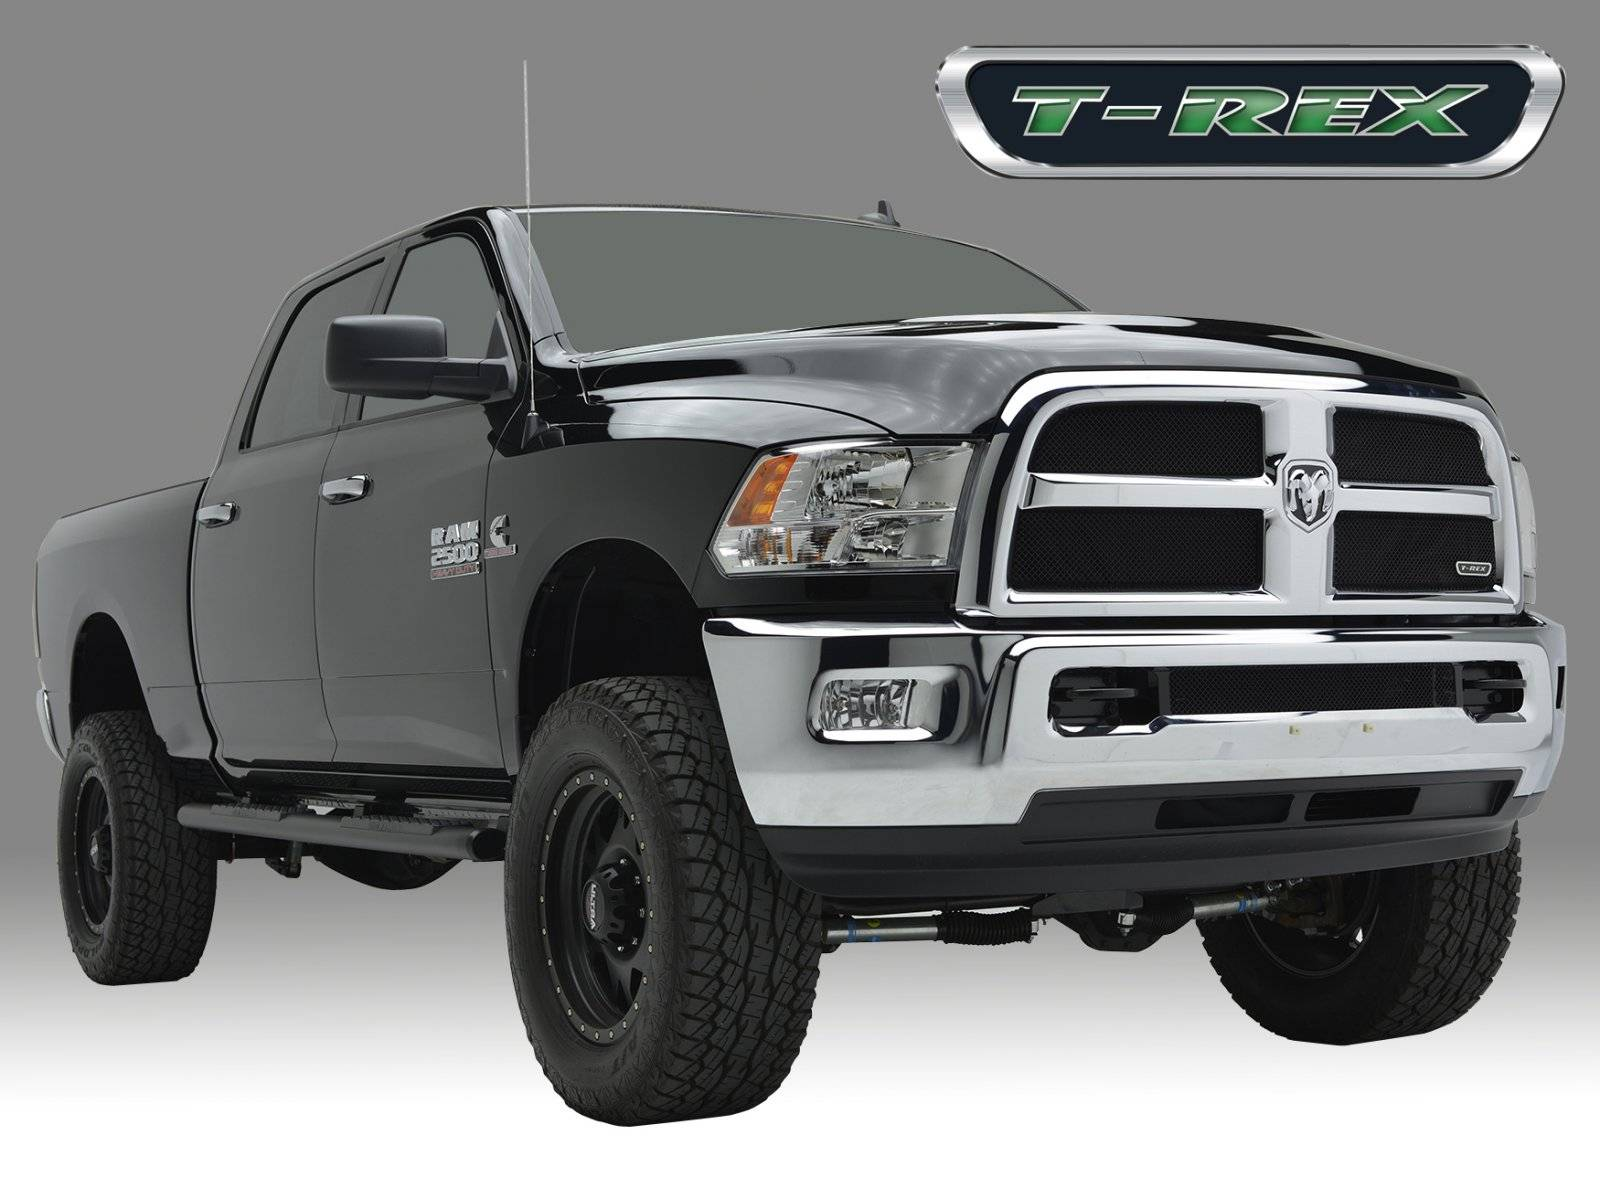 T-REX Dodge Ram PU 2500 / 3500 Sport Series, Formed Mesh Grille, Main, Replacement, 2 Pc's 4 Pc's look, Black Powdercoated Mild Steel, Requires replacement of inside chrome - Pt # 46452